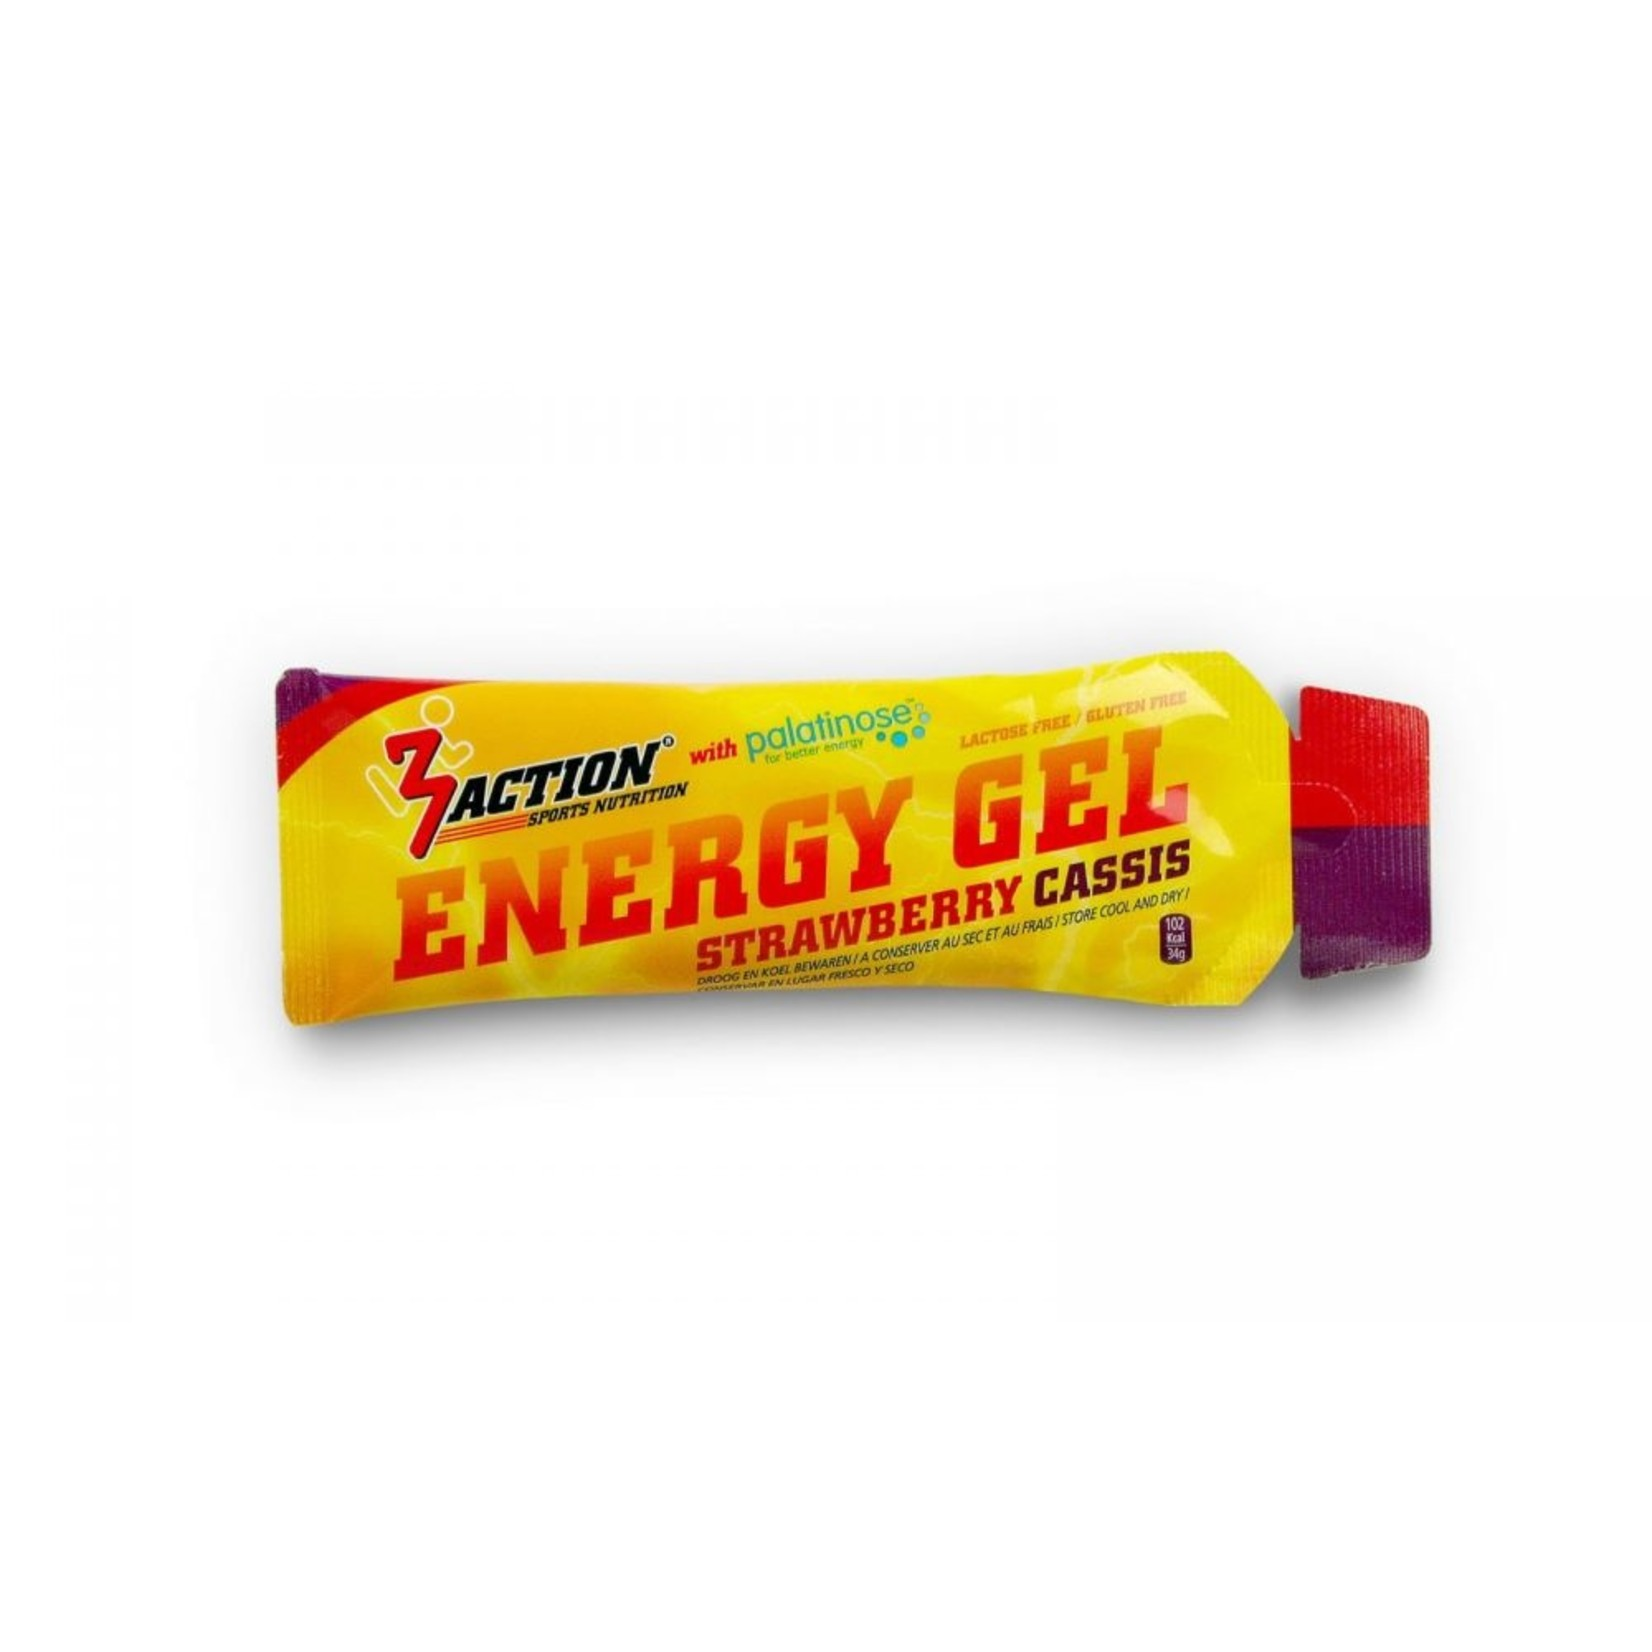 3Action 'Energy Gel (strawberry cassis)'